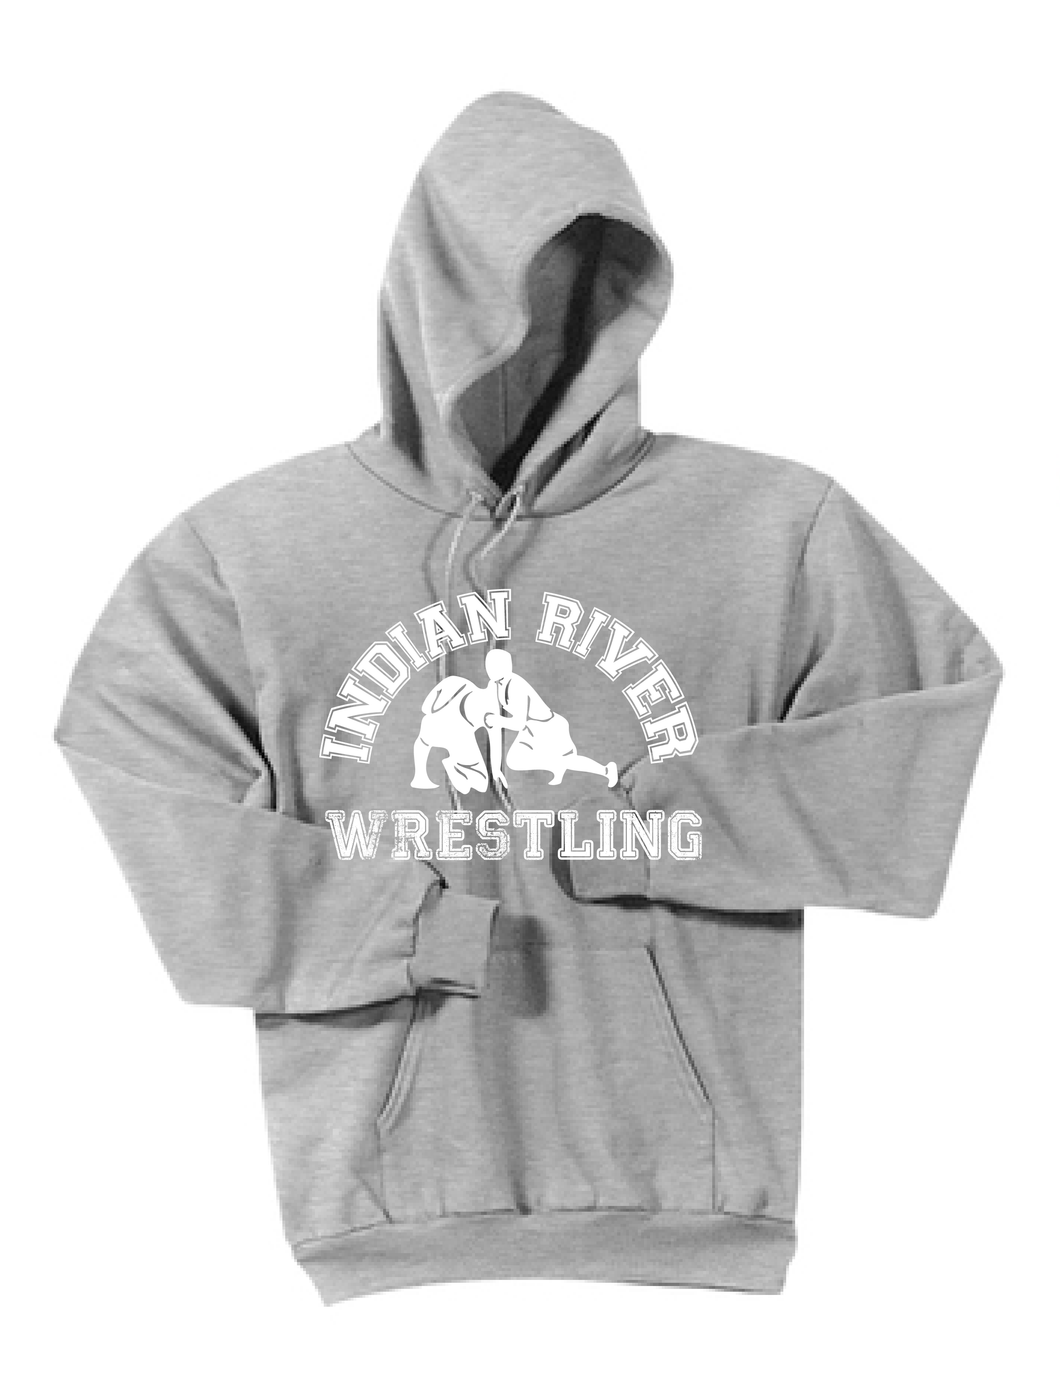 Hooded Sweatshirt / Ash Gray / Indian River Wrestling - Fidgety